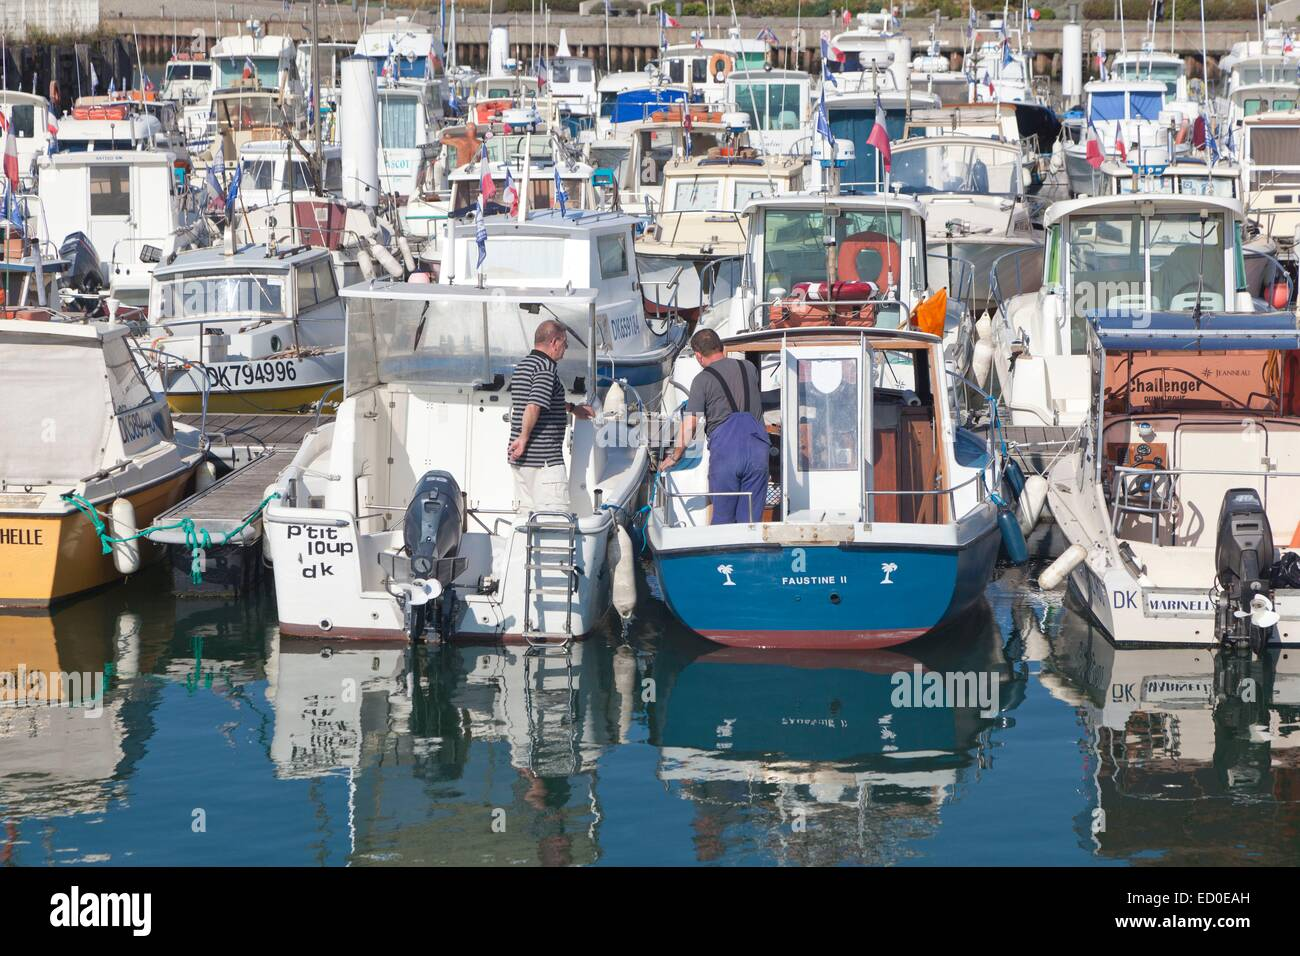 France, Nord, Dunkirk, boats in the marina Stock Photo